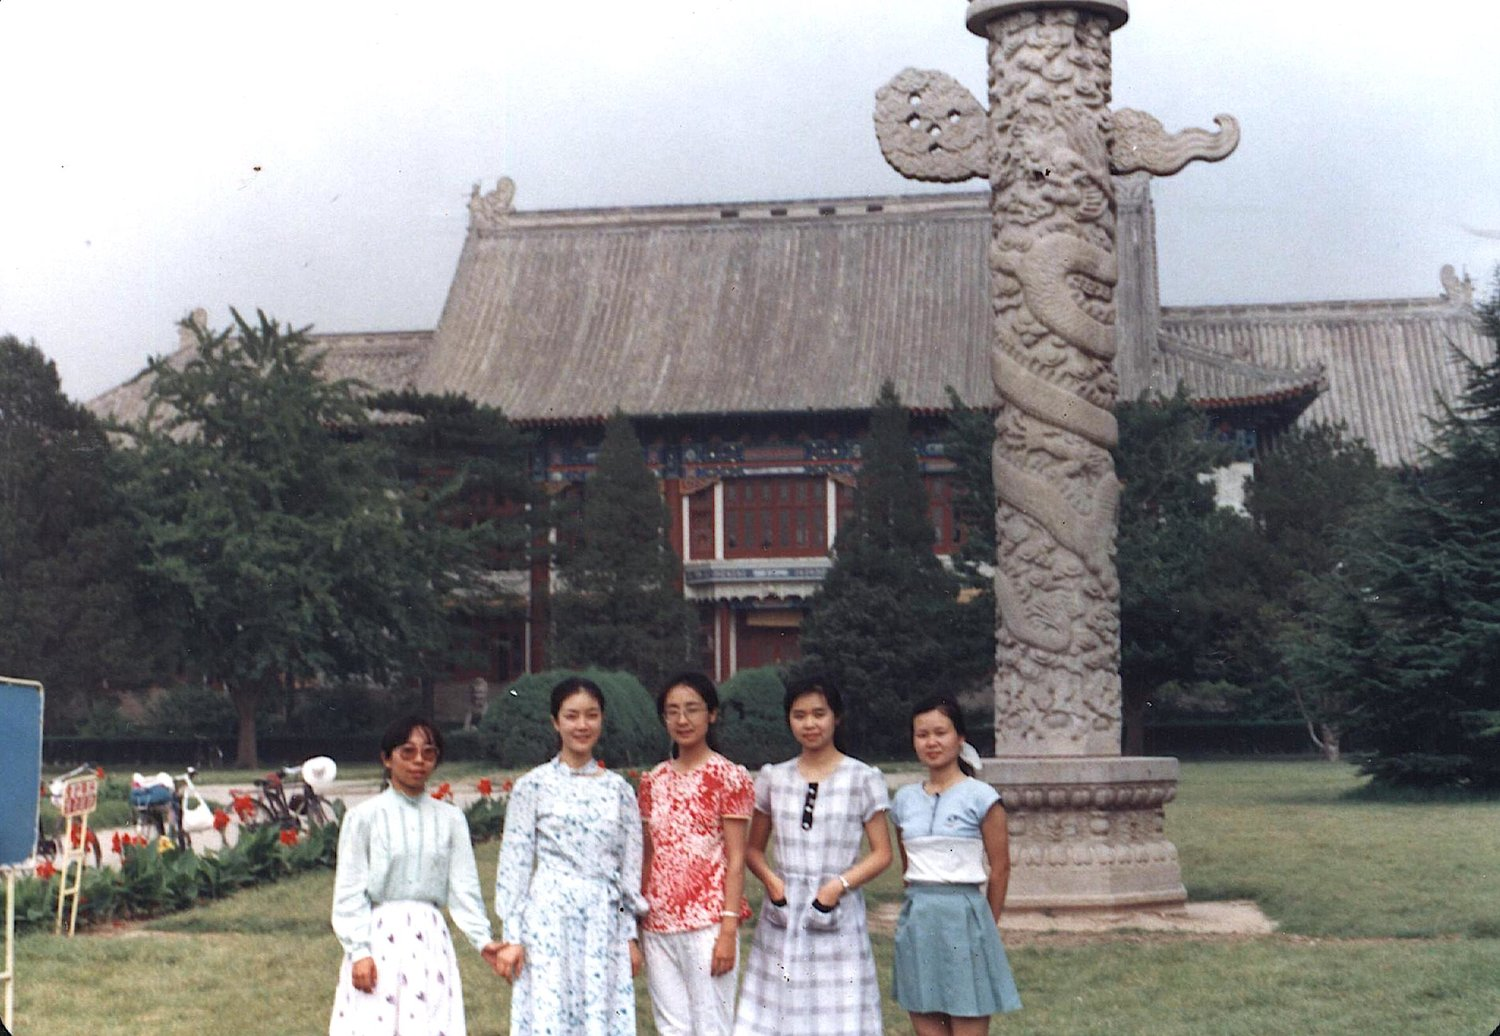 My roommates and I at Peking University 30 years ago, when we were about to graduated in 1988. 三十前年,我與室友們畢業前夕在北大的合影。